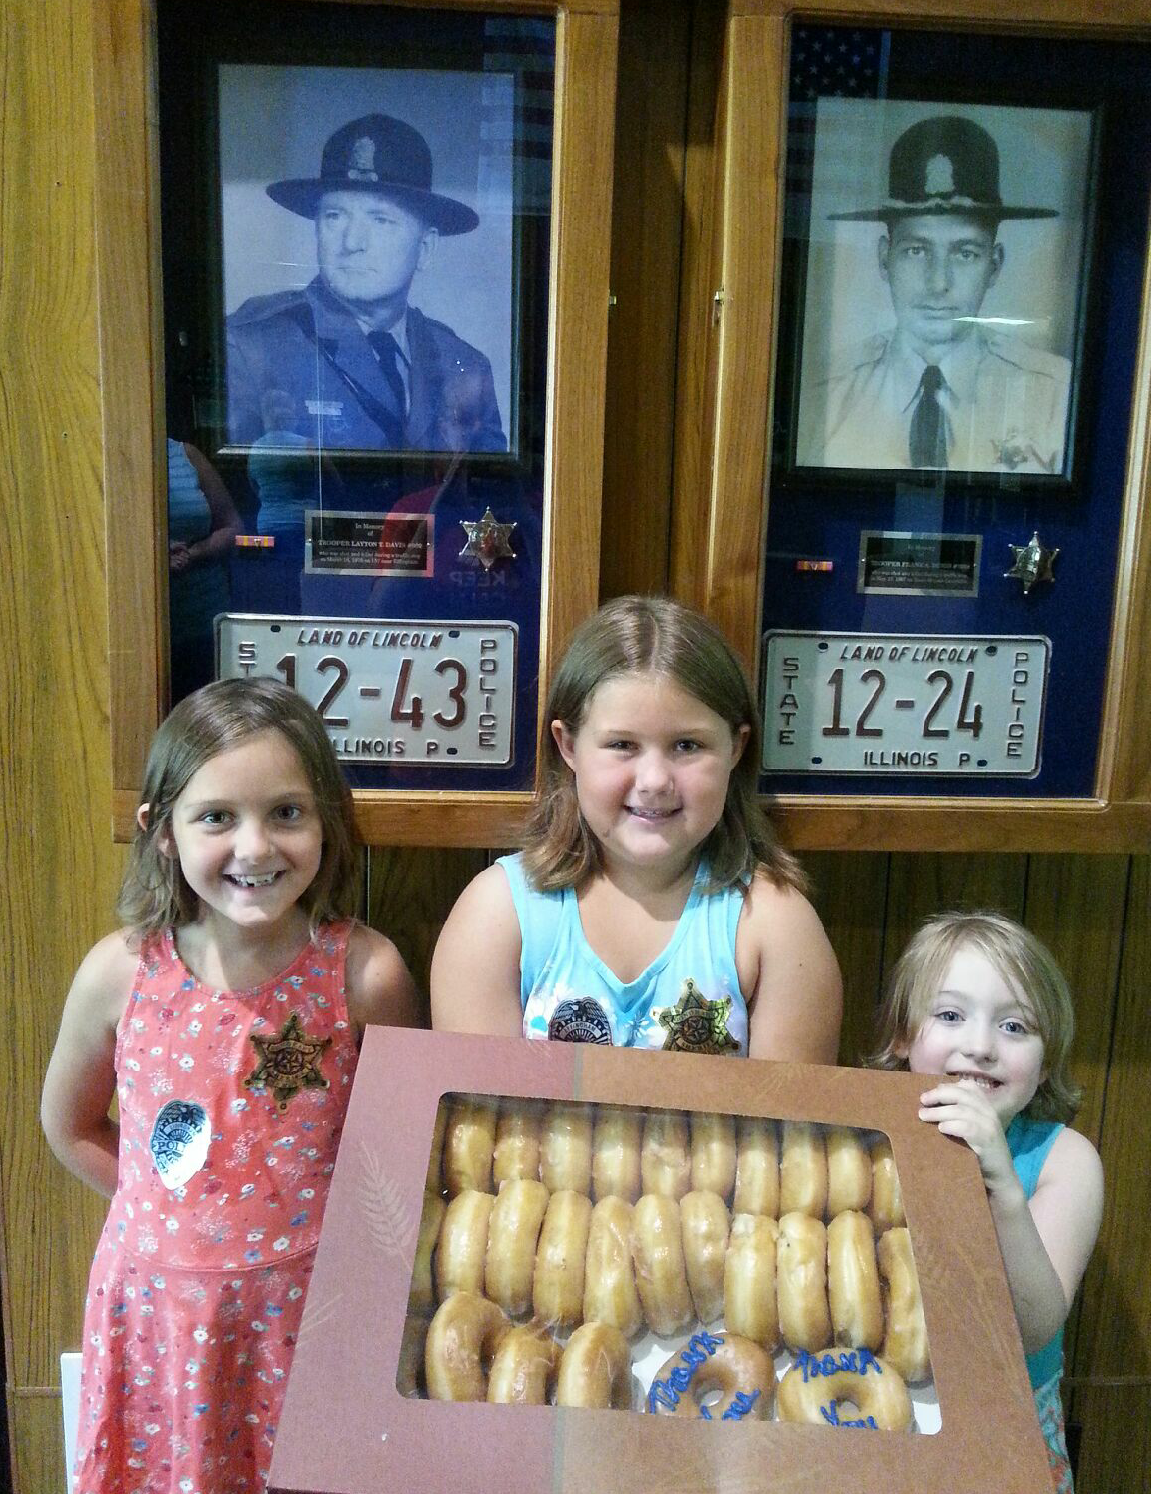 Local Youth Brought Donuts to Local Law Enforcement